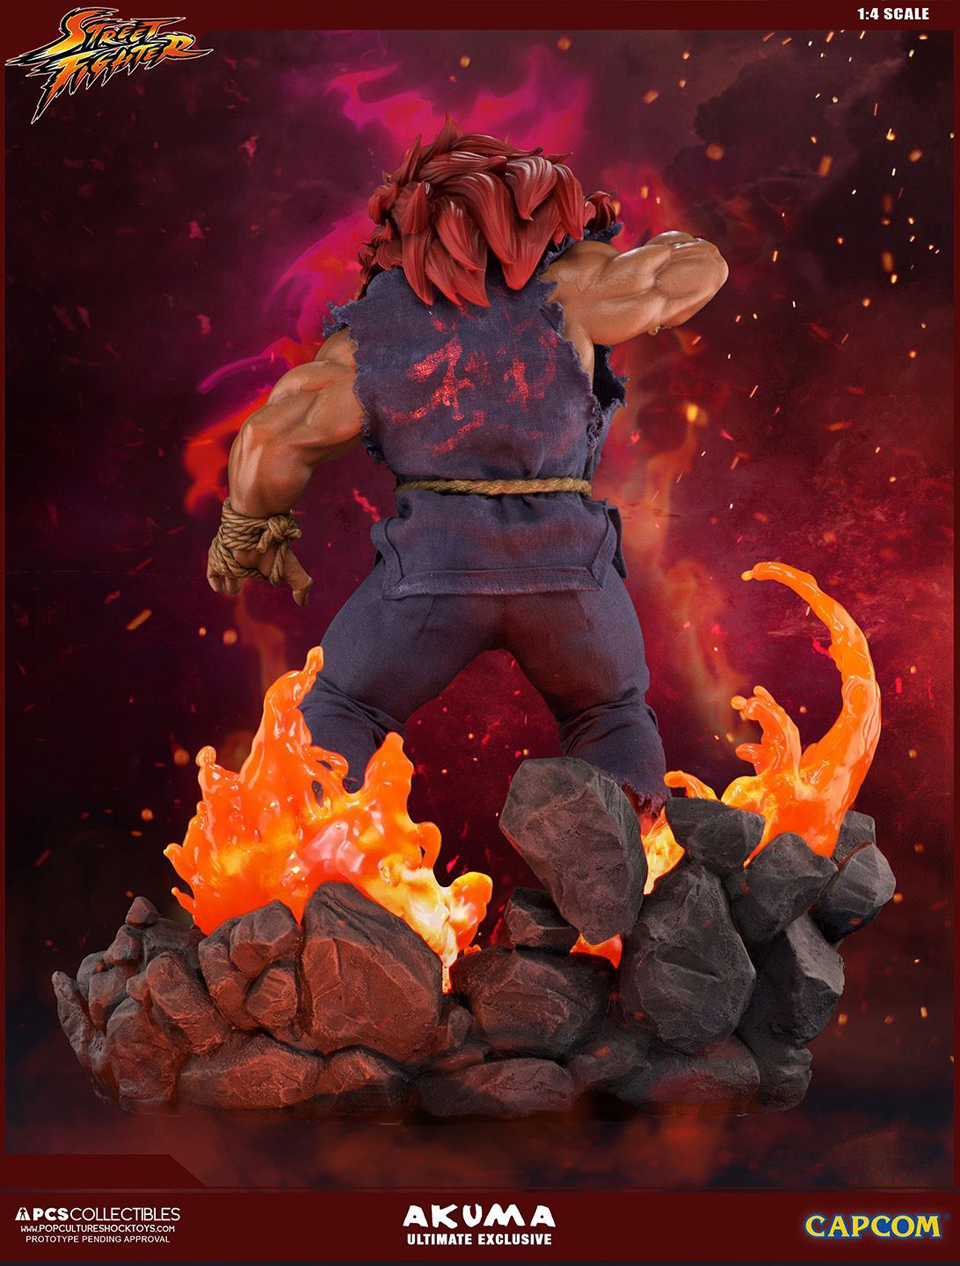 Akuma 1:4 Ultimate EX Statue